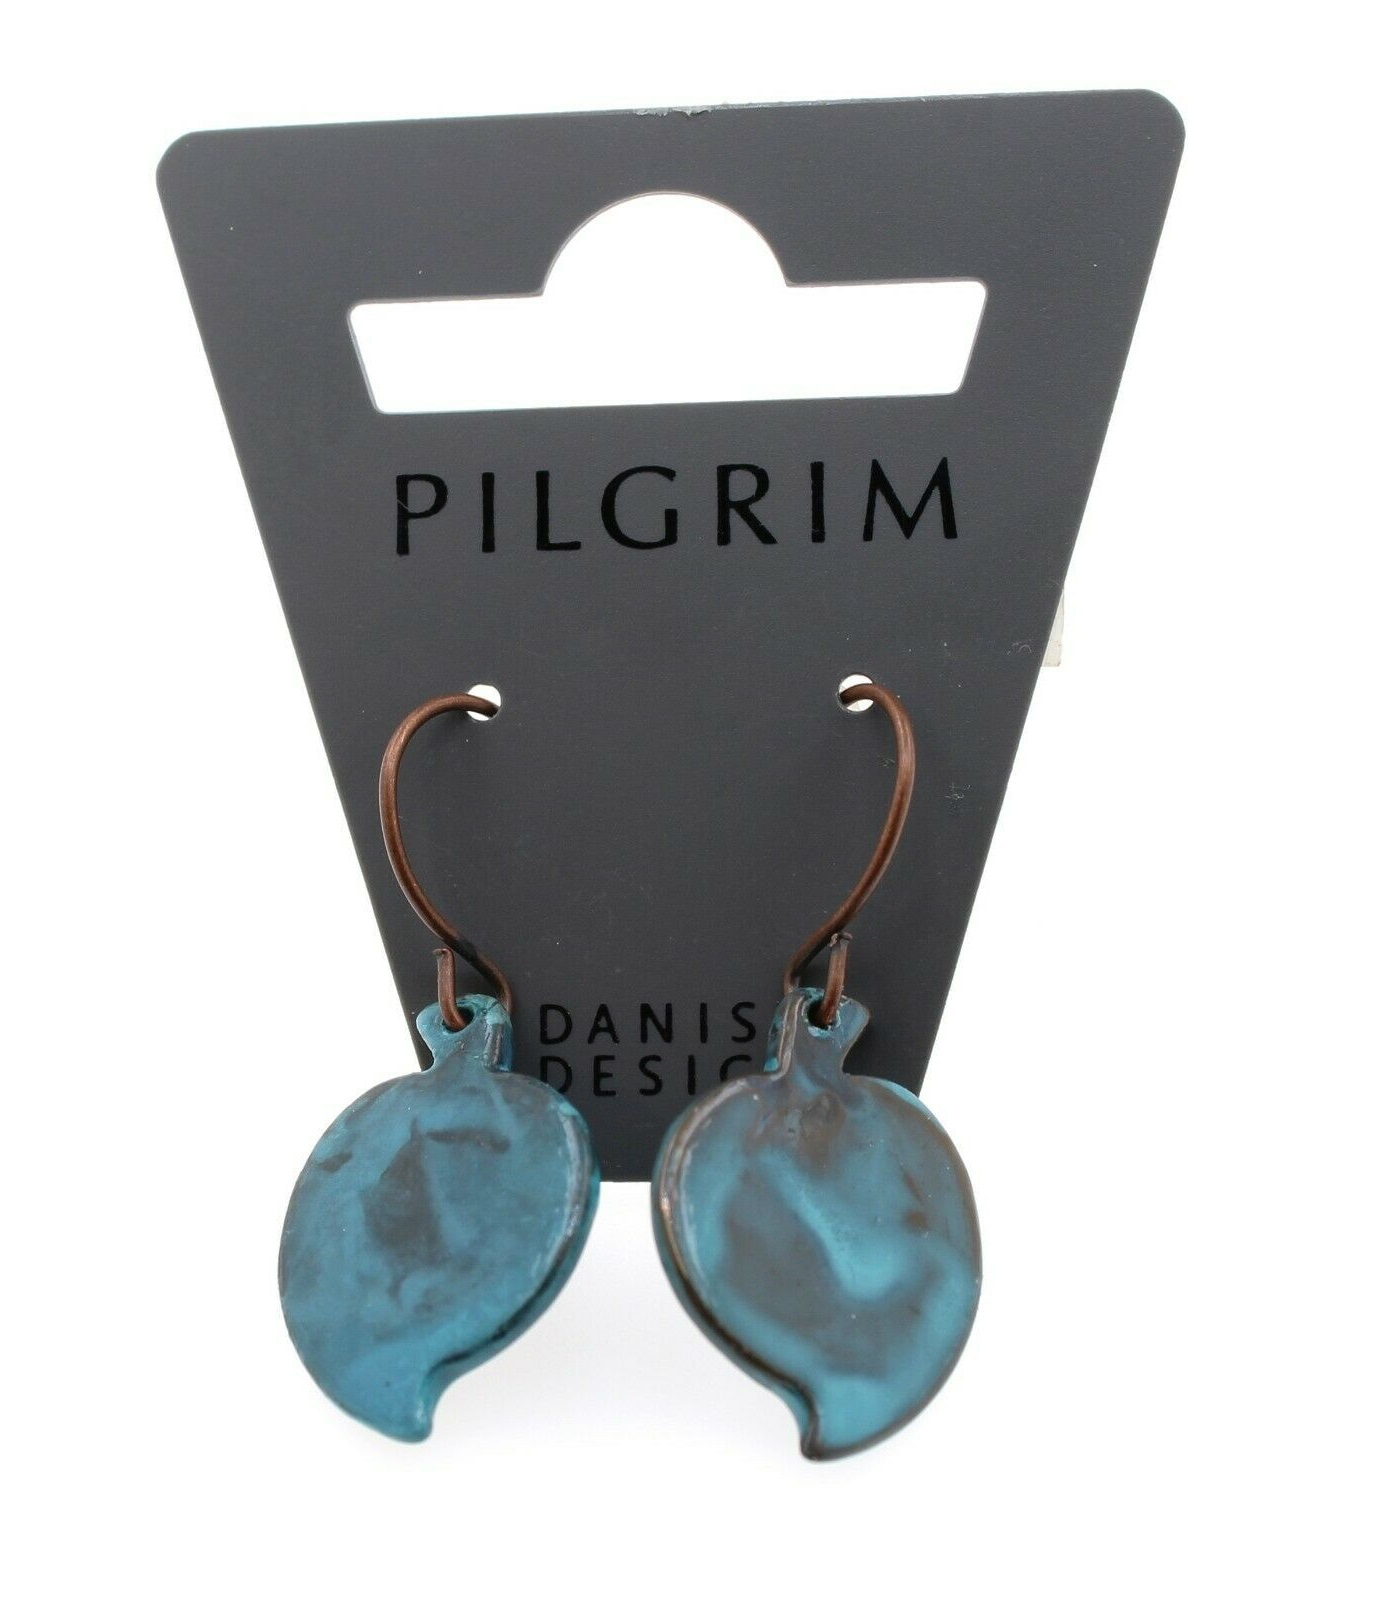 PILGRIM - Patina - Small Leaf Earrings Style 1 - Fired Blue/Copper BNWT